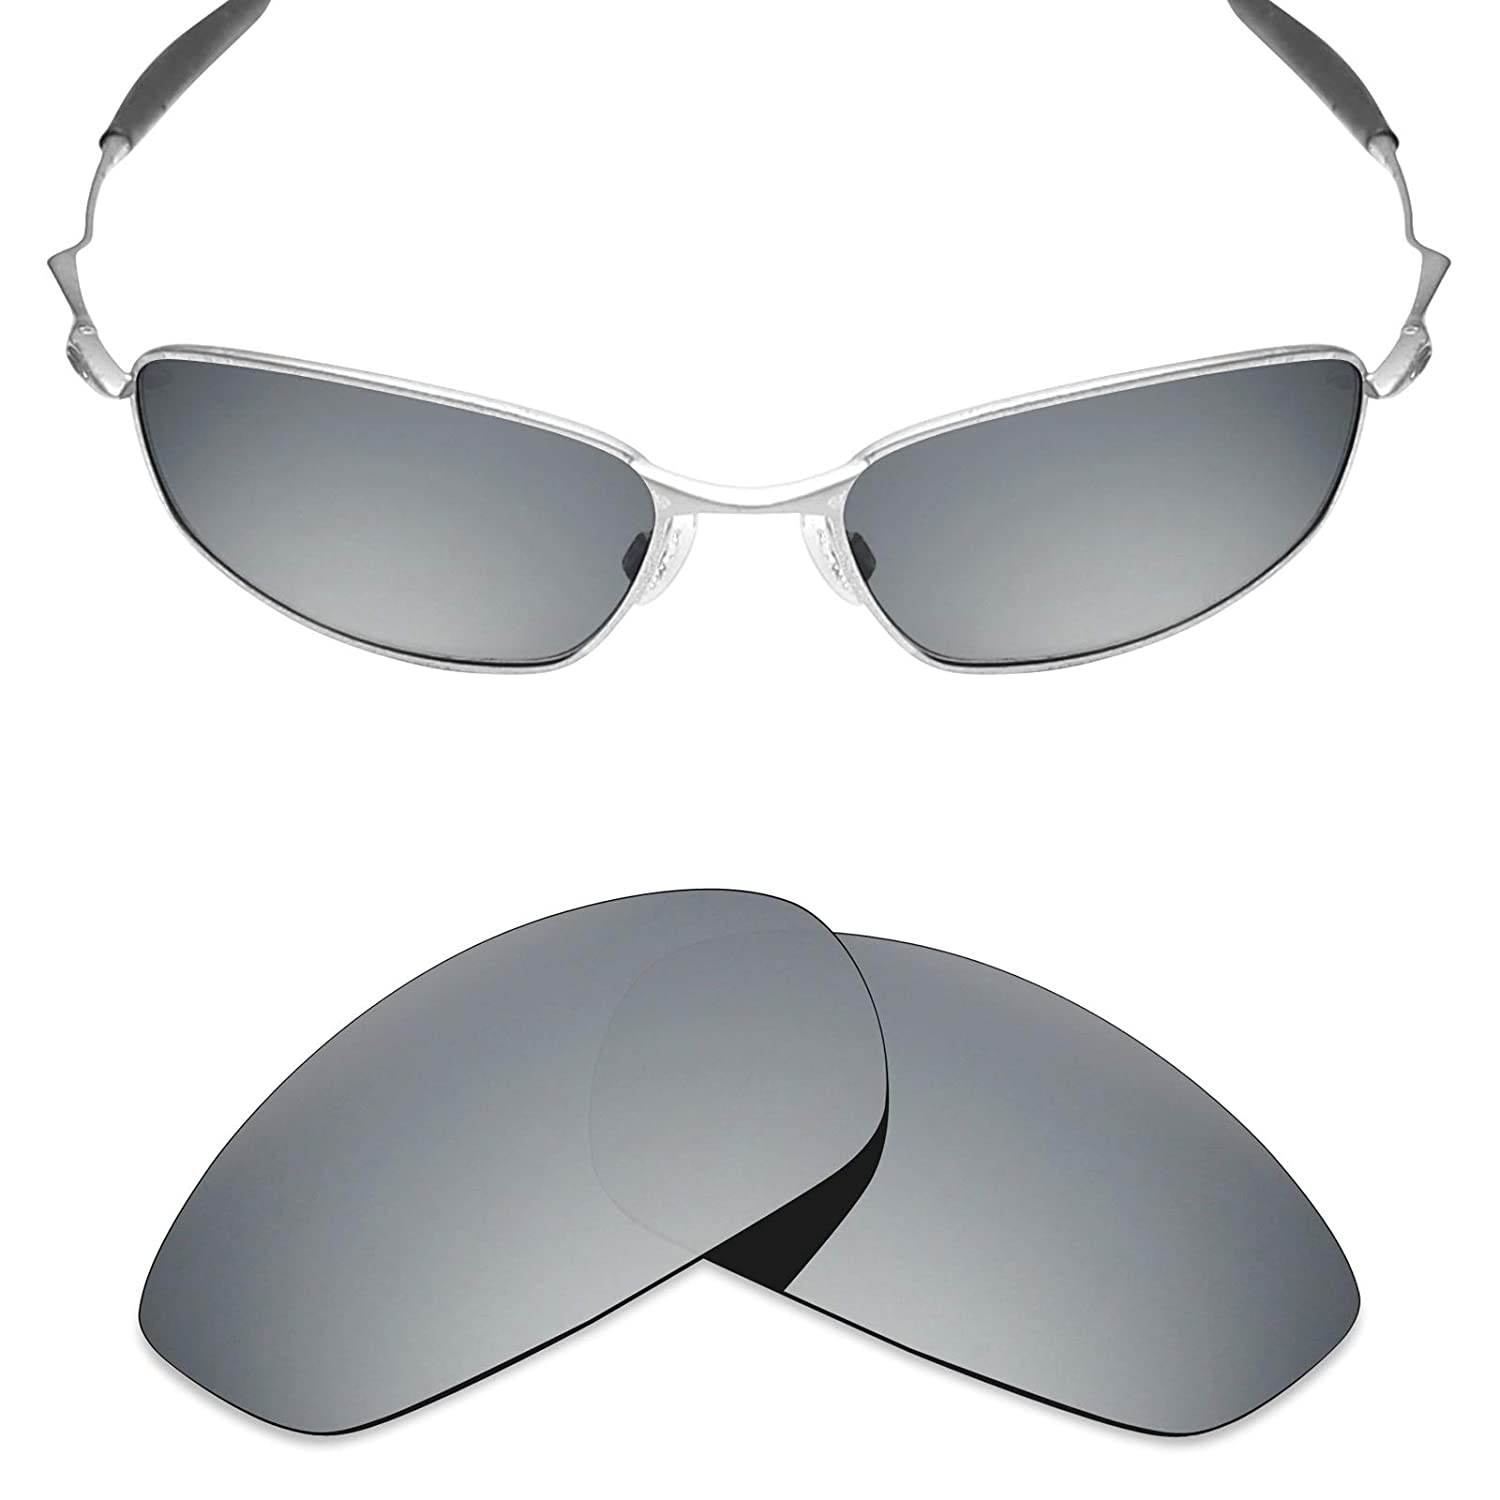 22e71d27605 Mryok Replacement Lenses for Oakley Whisker Sunglasses - Rich Options  OY134W2G12D